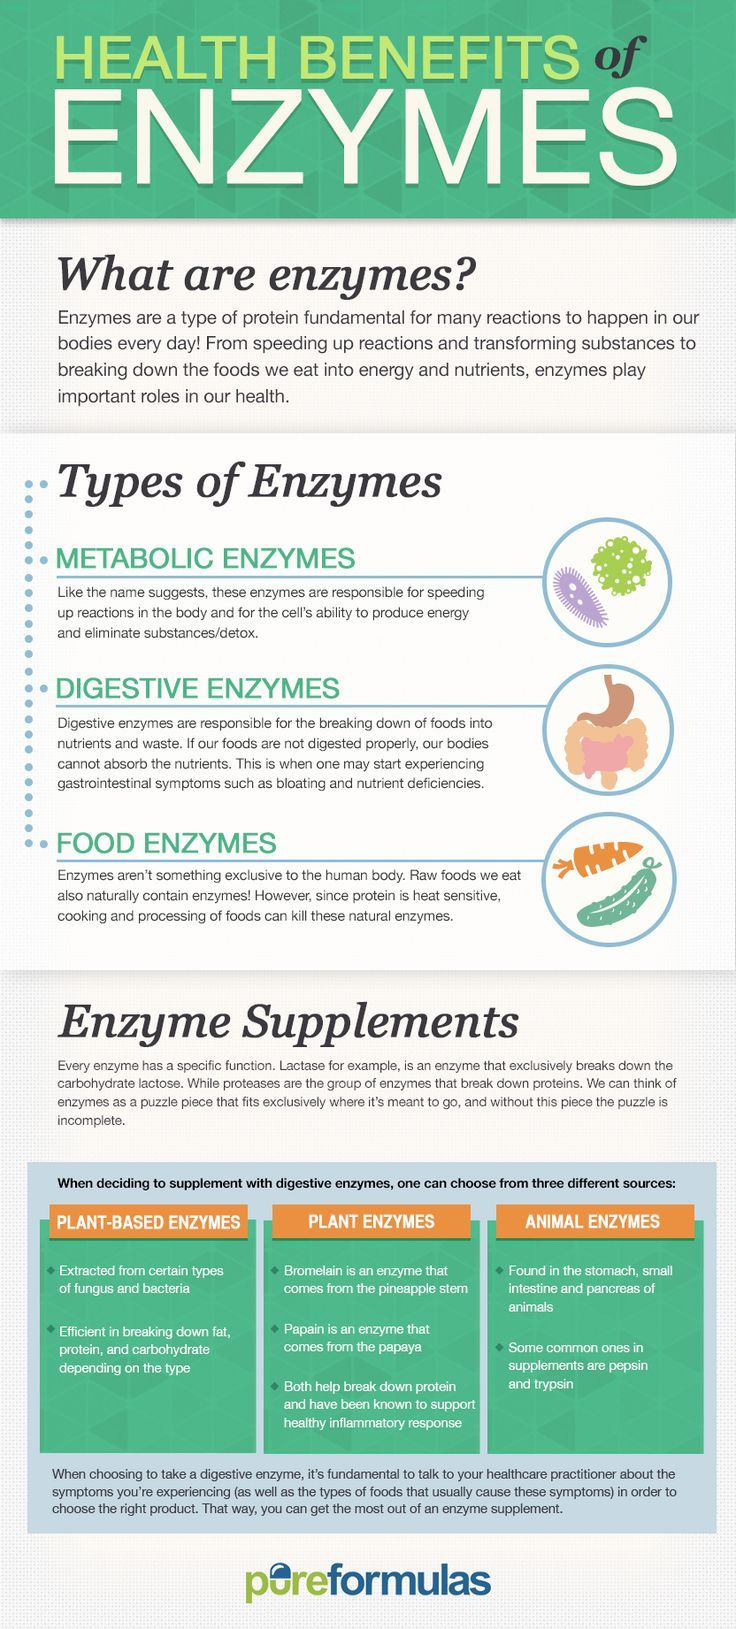 Health Benefits of Enzymes